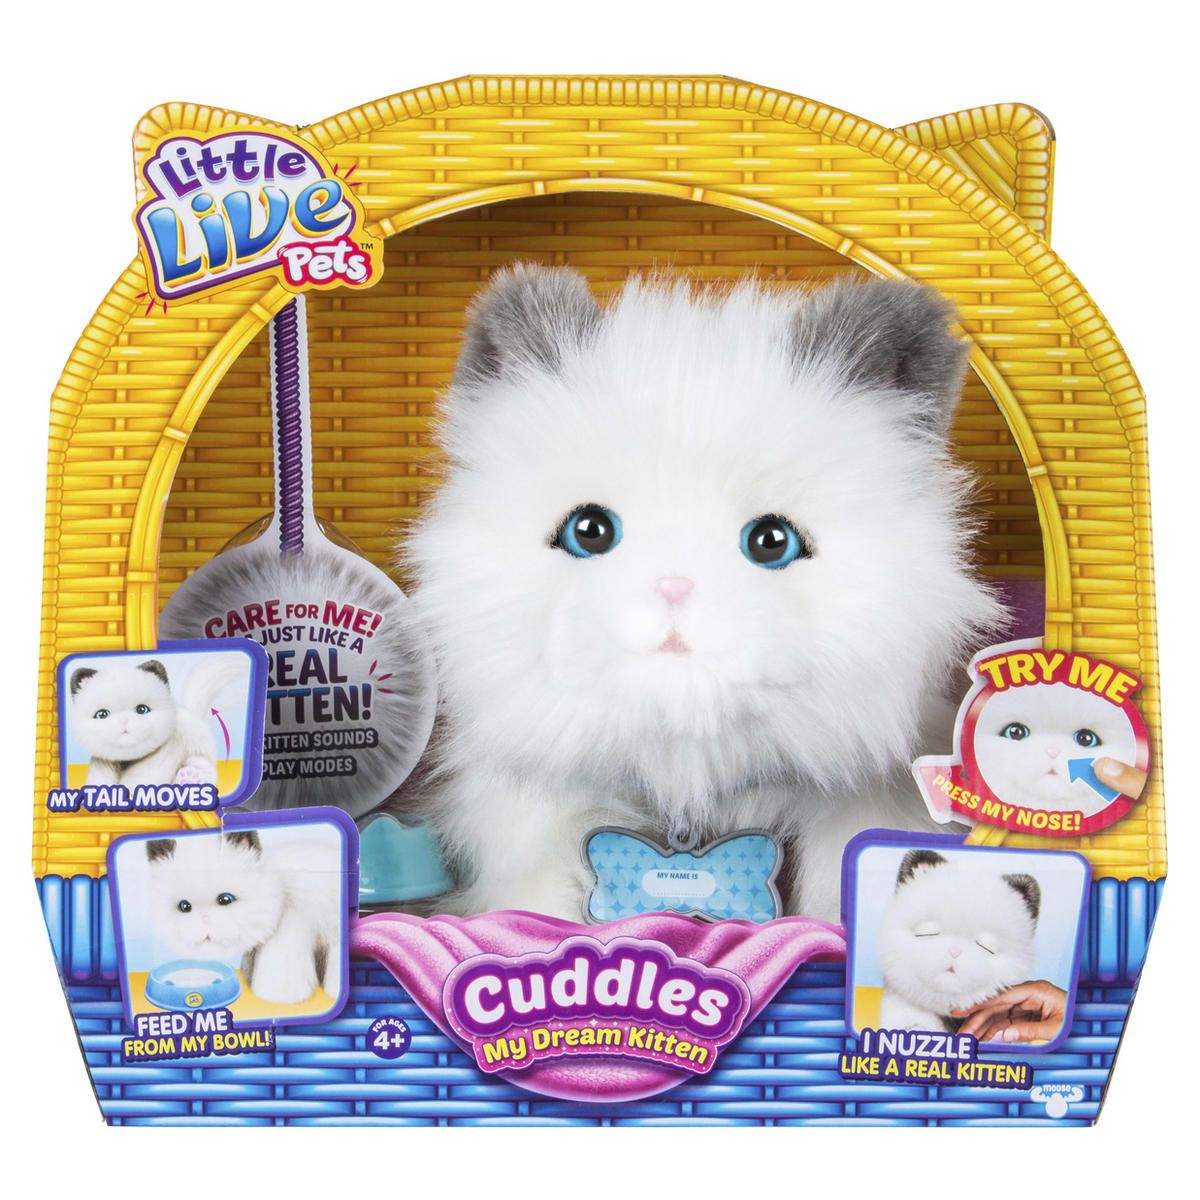 Little Live Pets Cuddles My Dream Kitten Kmart Pets Cuddling Little Live Pets Kitten Cuddle